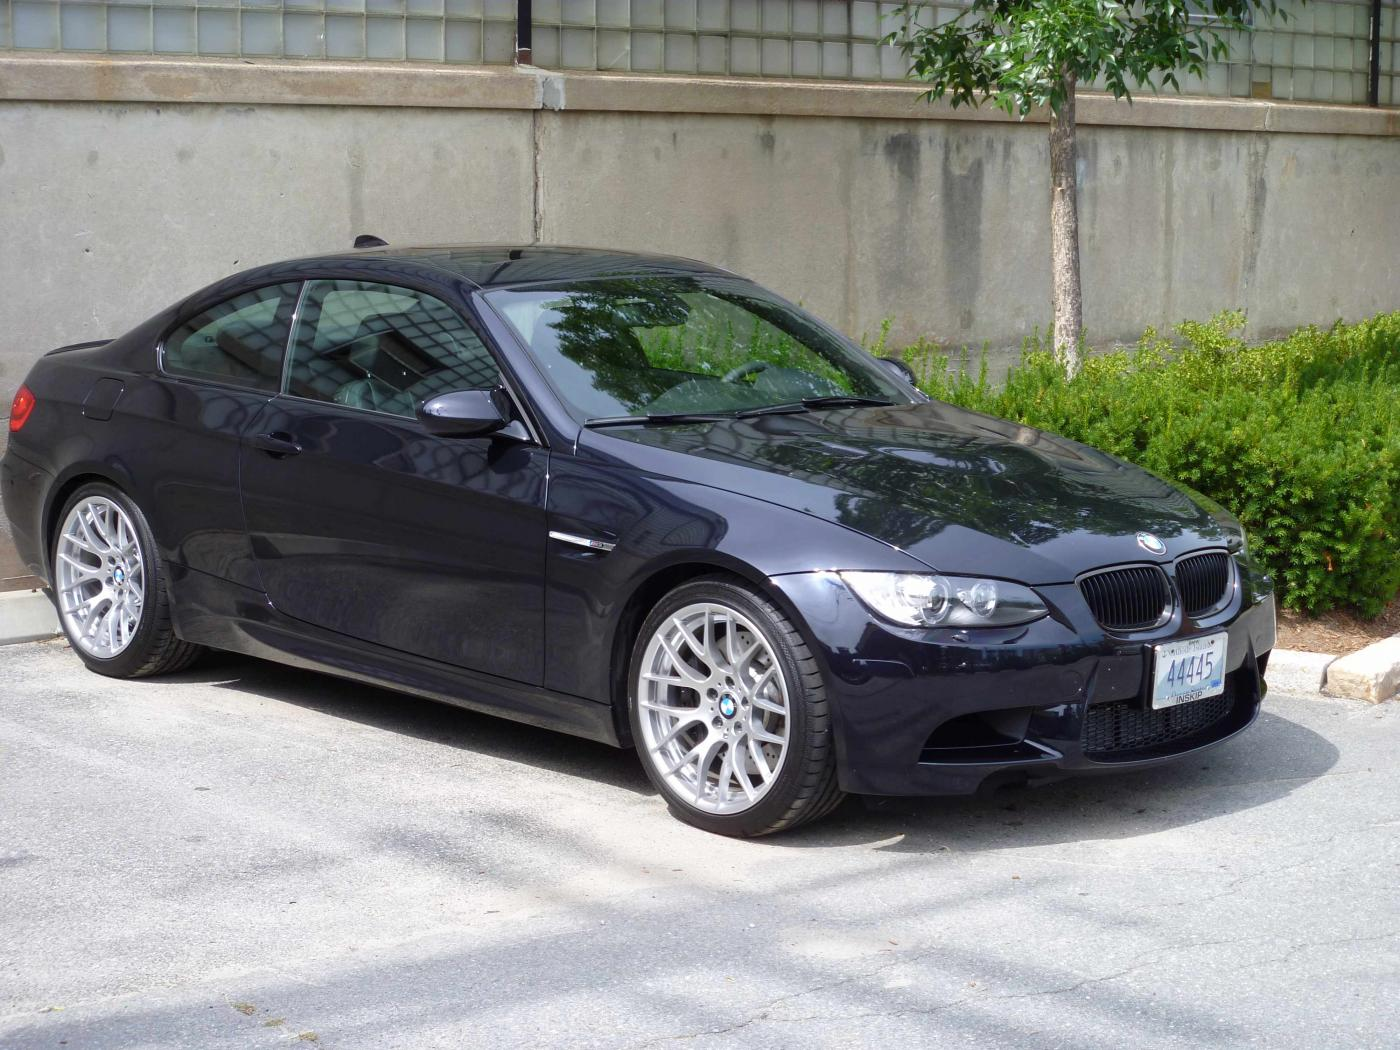 BMW  2005 Bmw M3 Competition Package  19s20s Car and Autos All